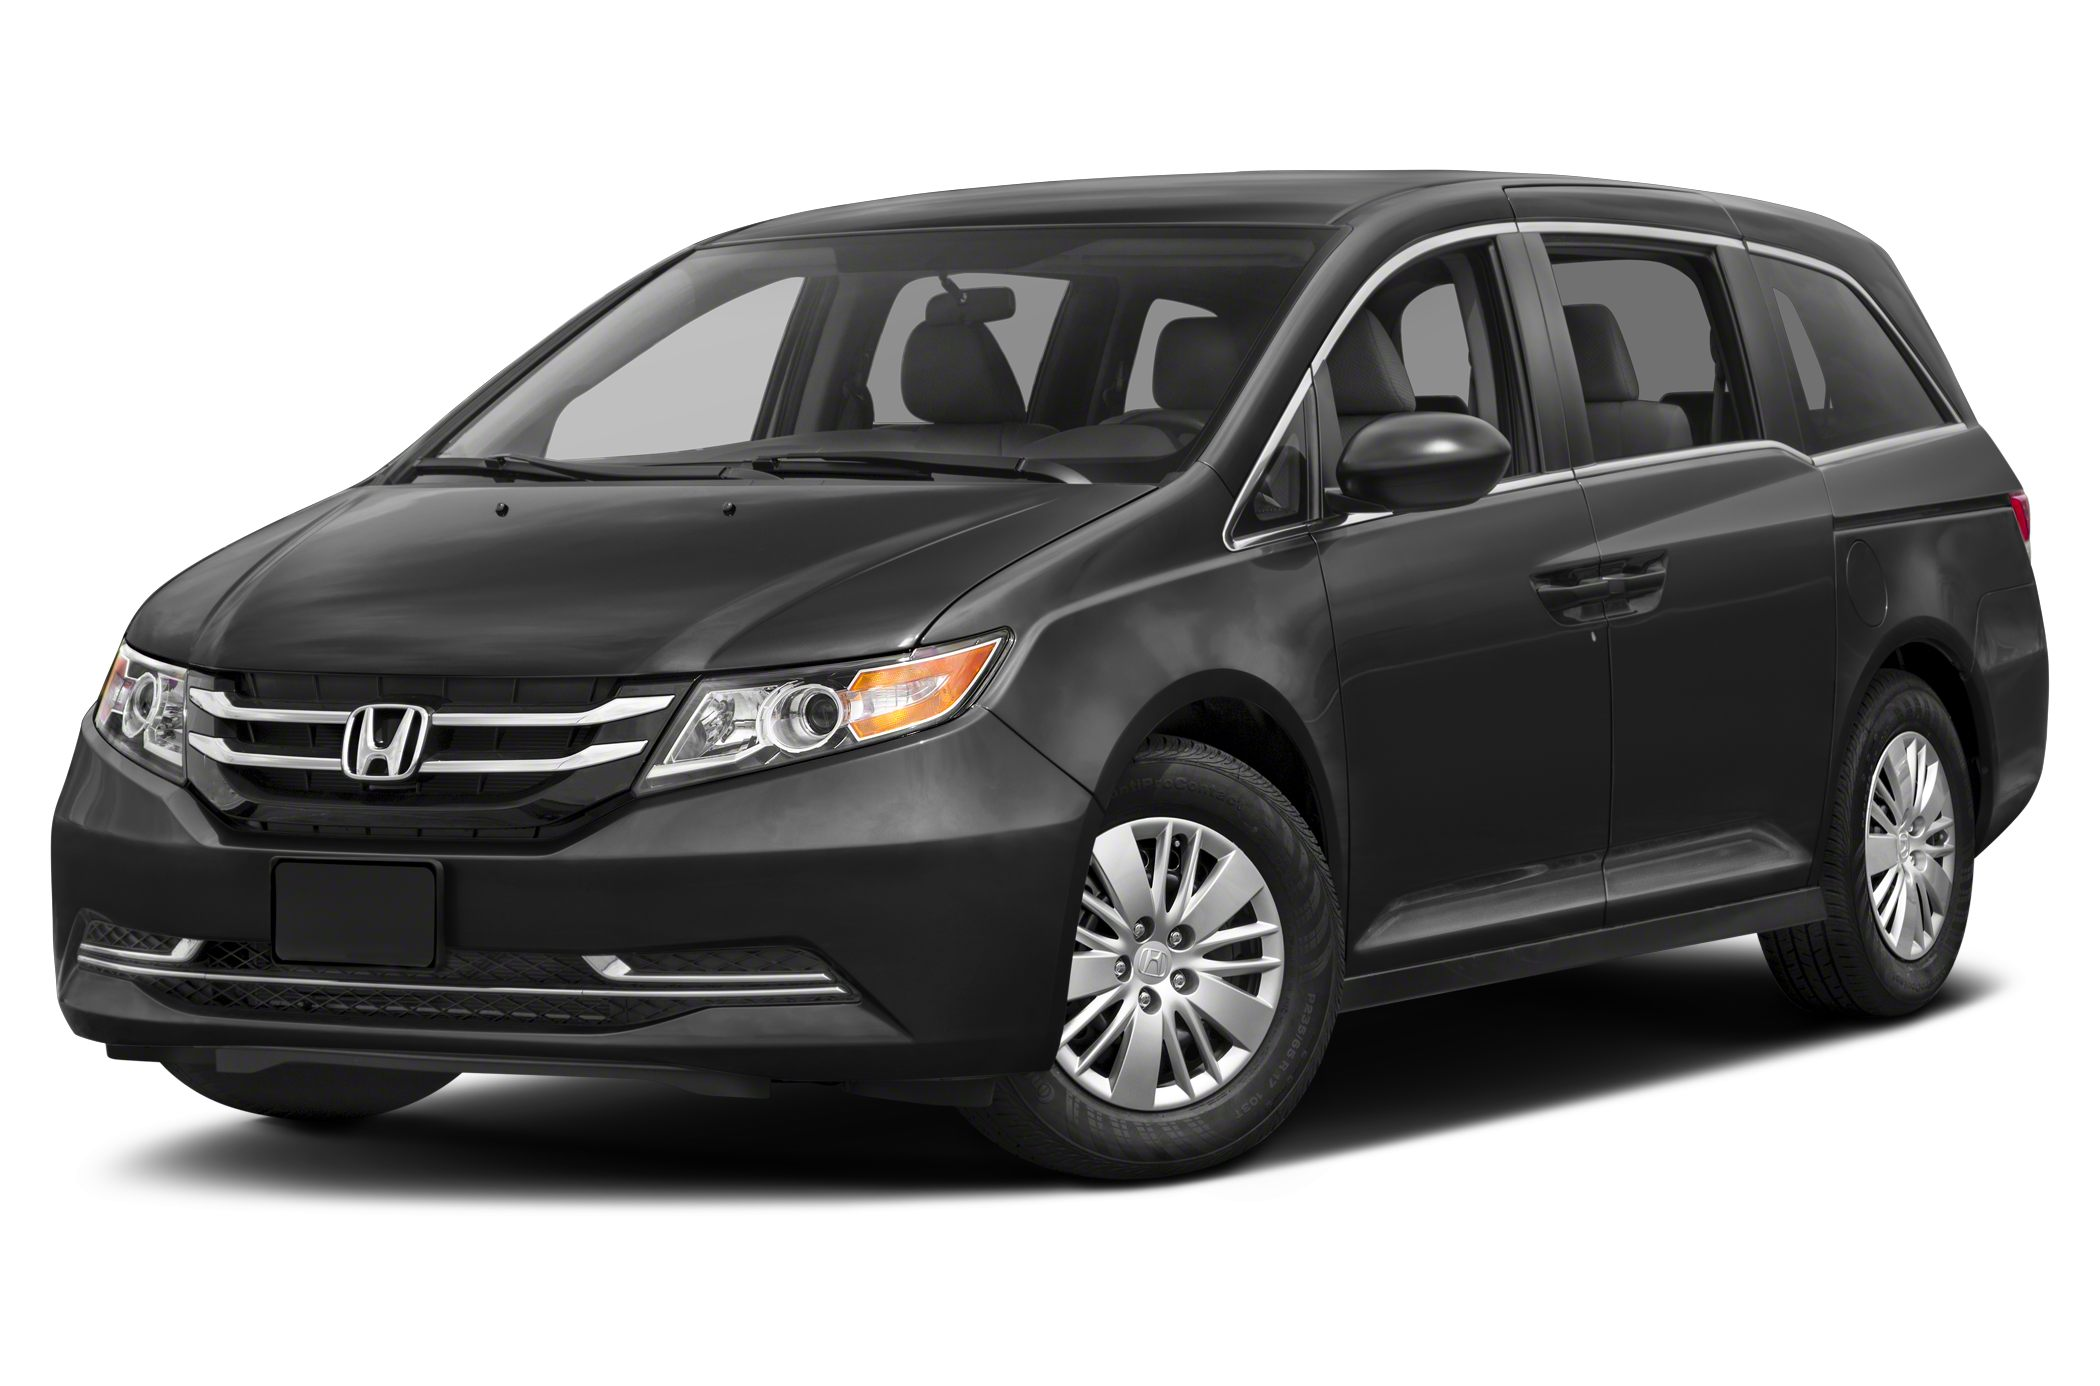 on sale in japan honda won 39 t bring 31k odyssey hybrid to us autoblog. Black Bedroom Furniture Sets. Home Design Ideas